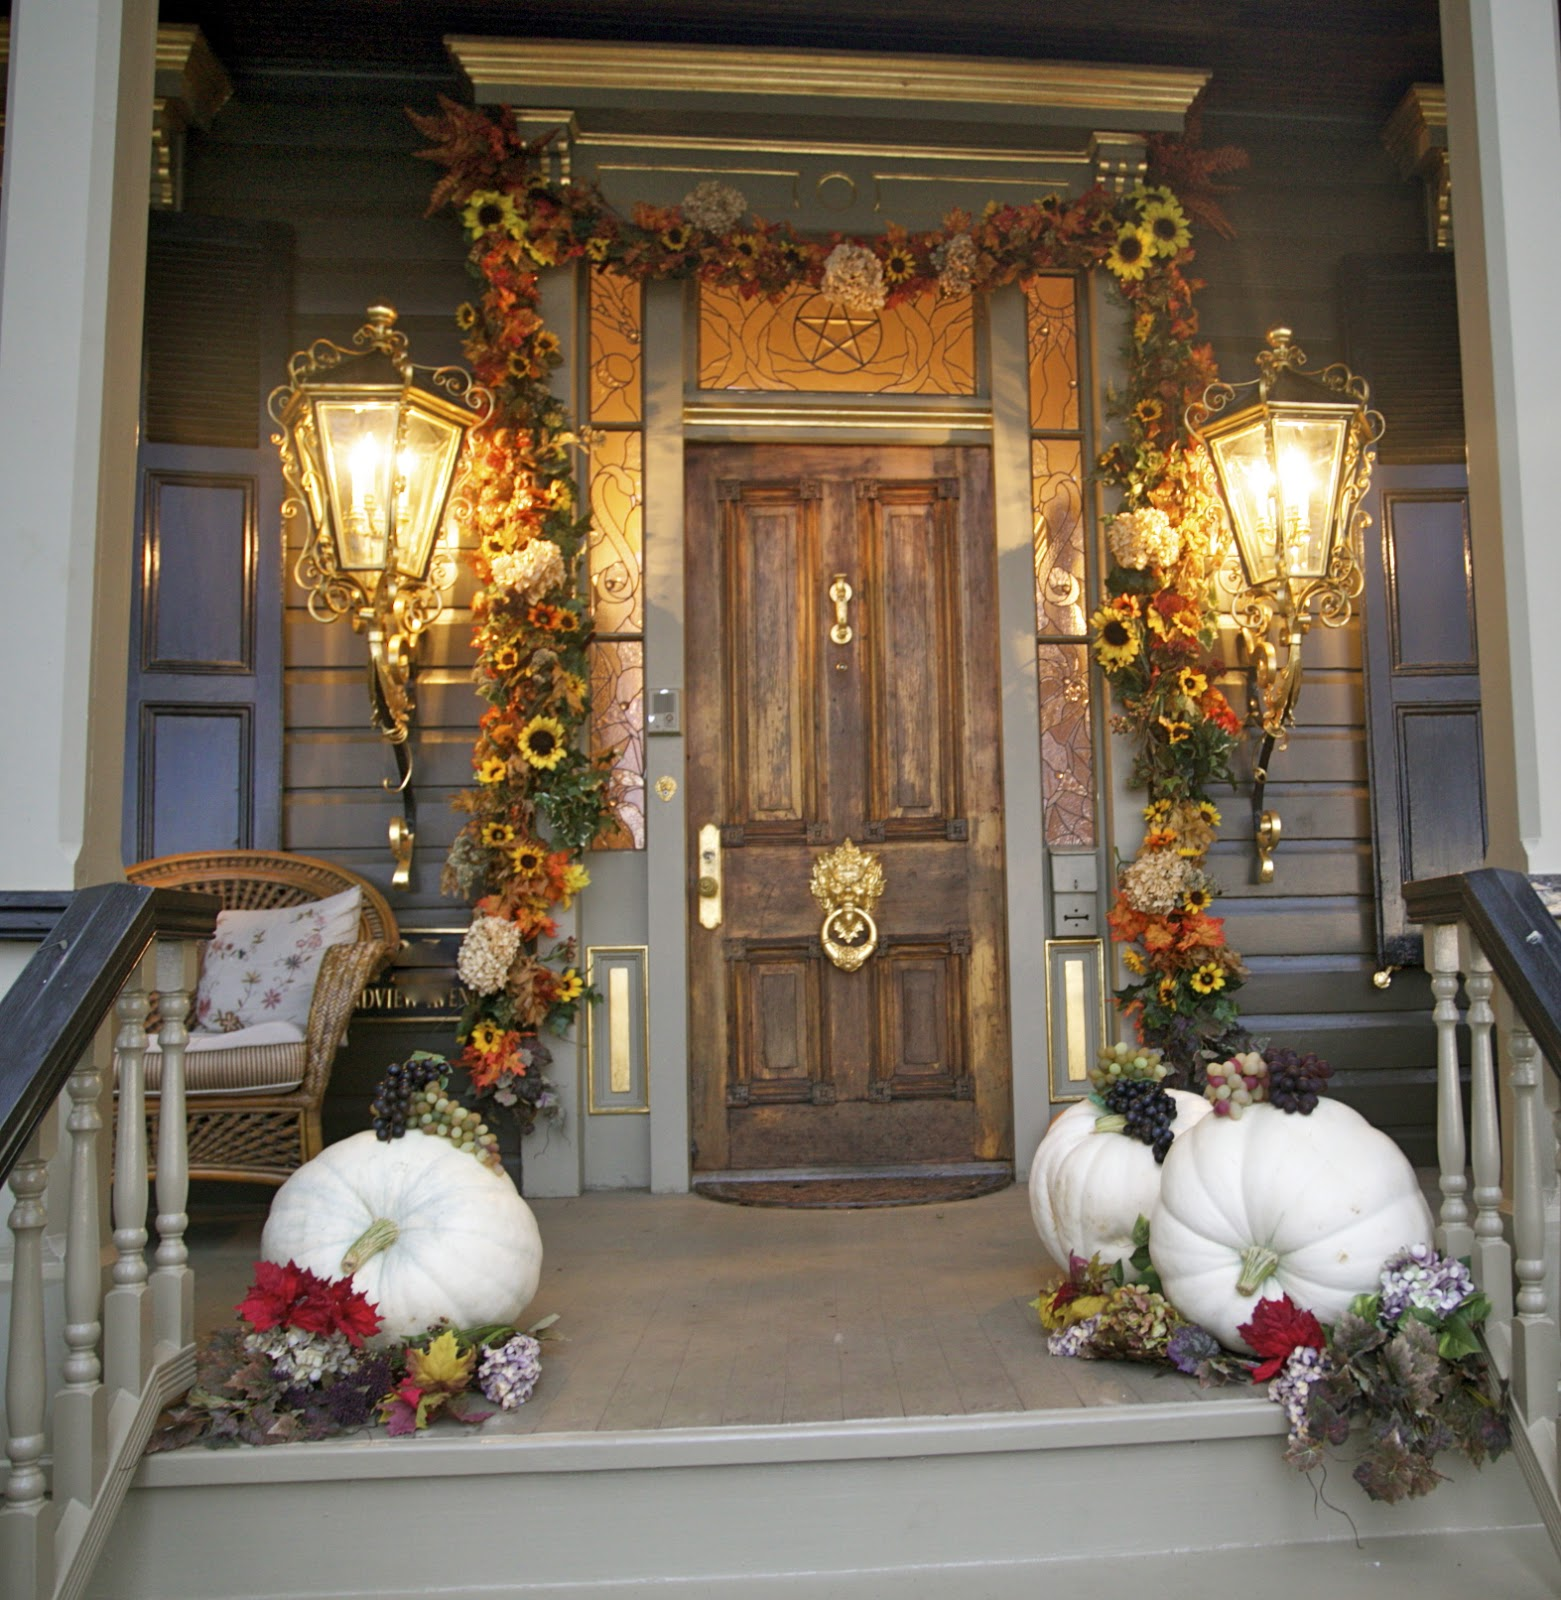 Decorations For Fall: Fall Decorating